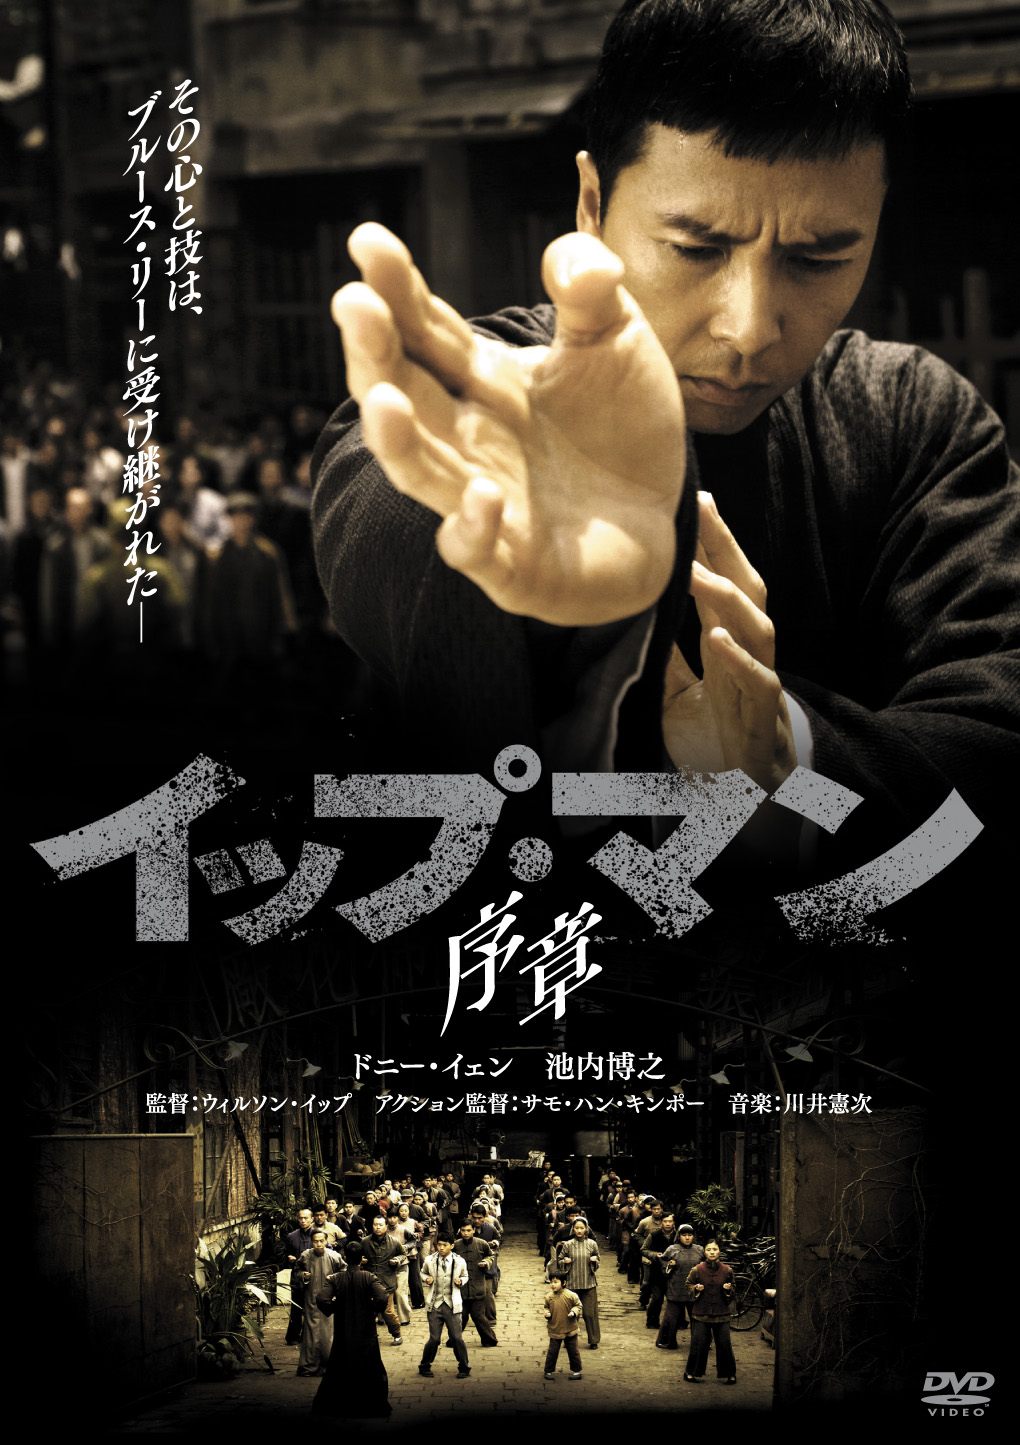 http://tennenzinen.com/karatemovie/wp-content/uploads/2012/11/ipman.jpg